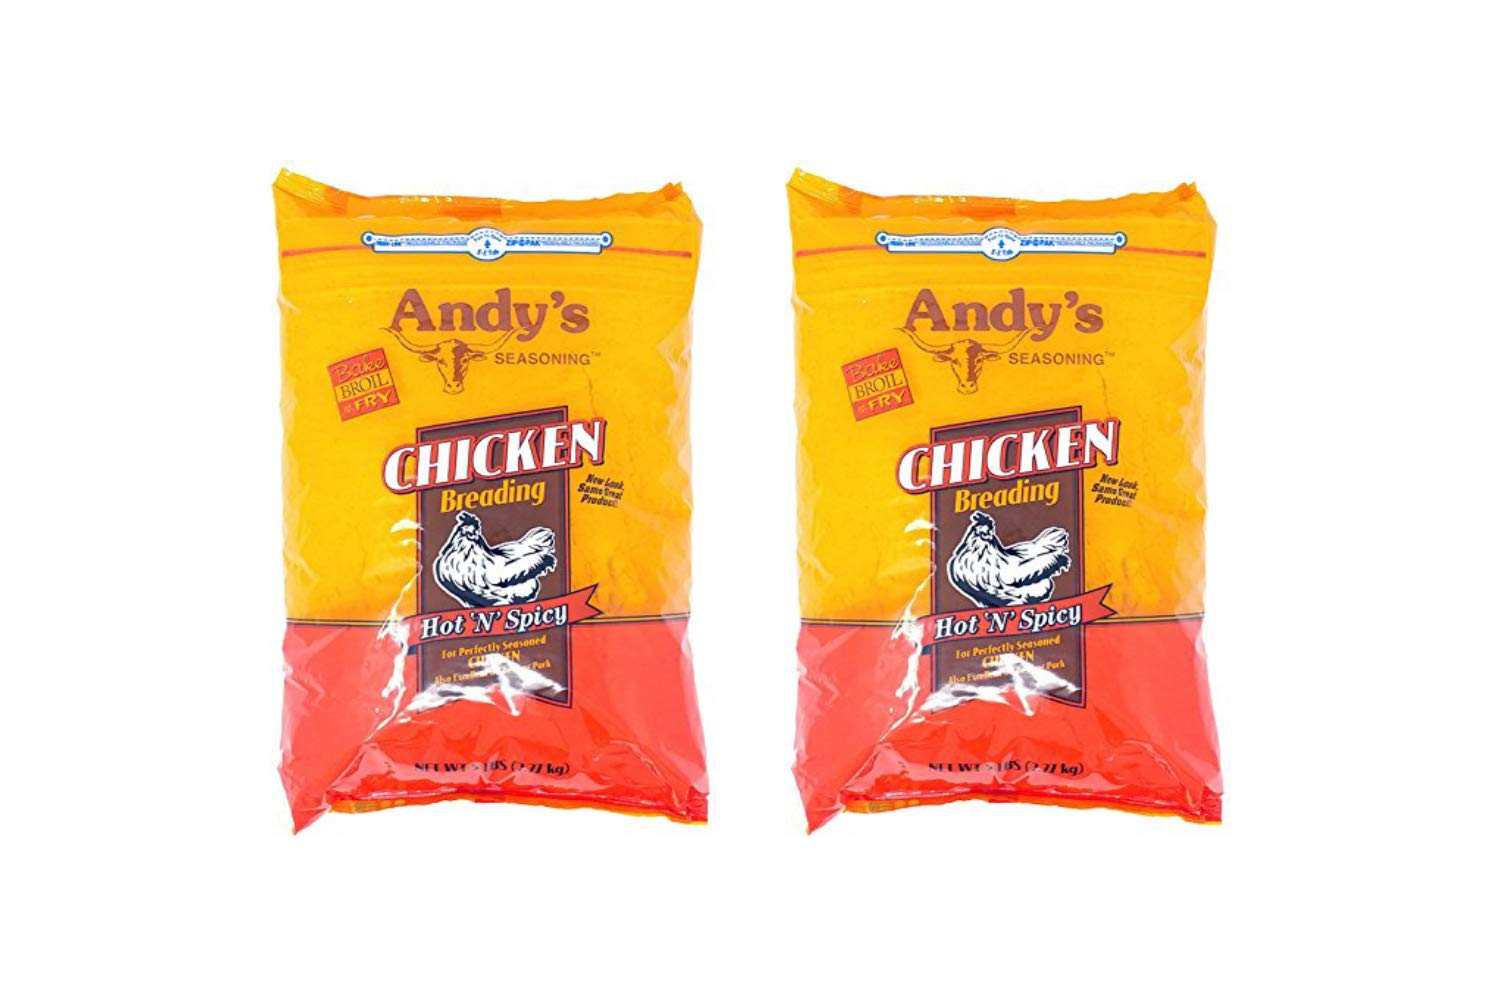 Andy's Seasoning Hot n Spicy Chicken Breading 80 Ounces Bag (2 Pack)